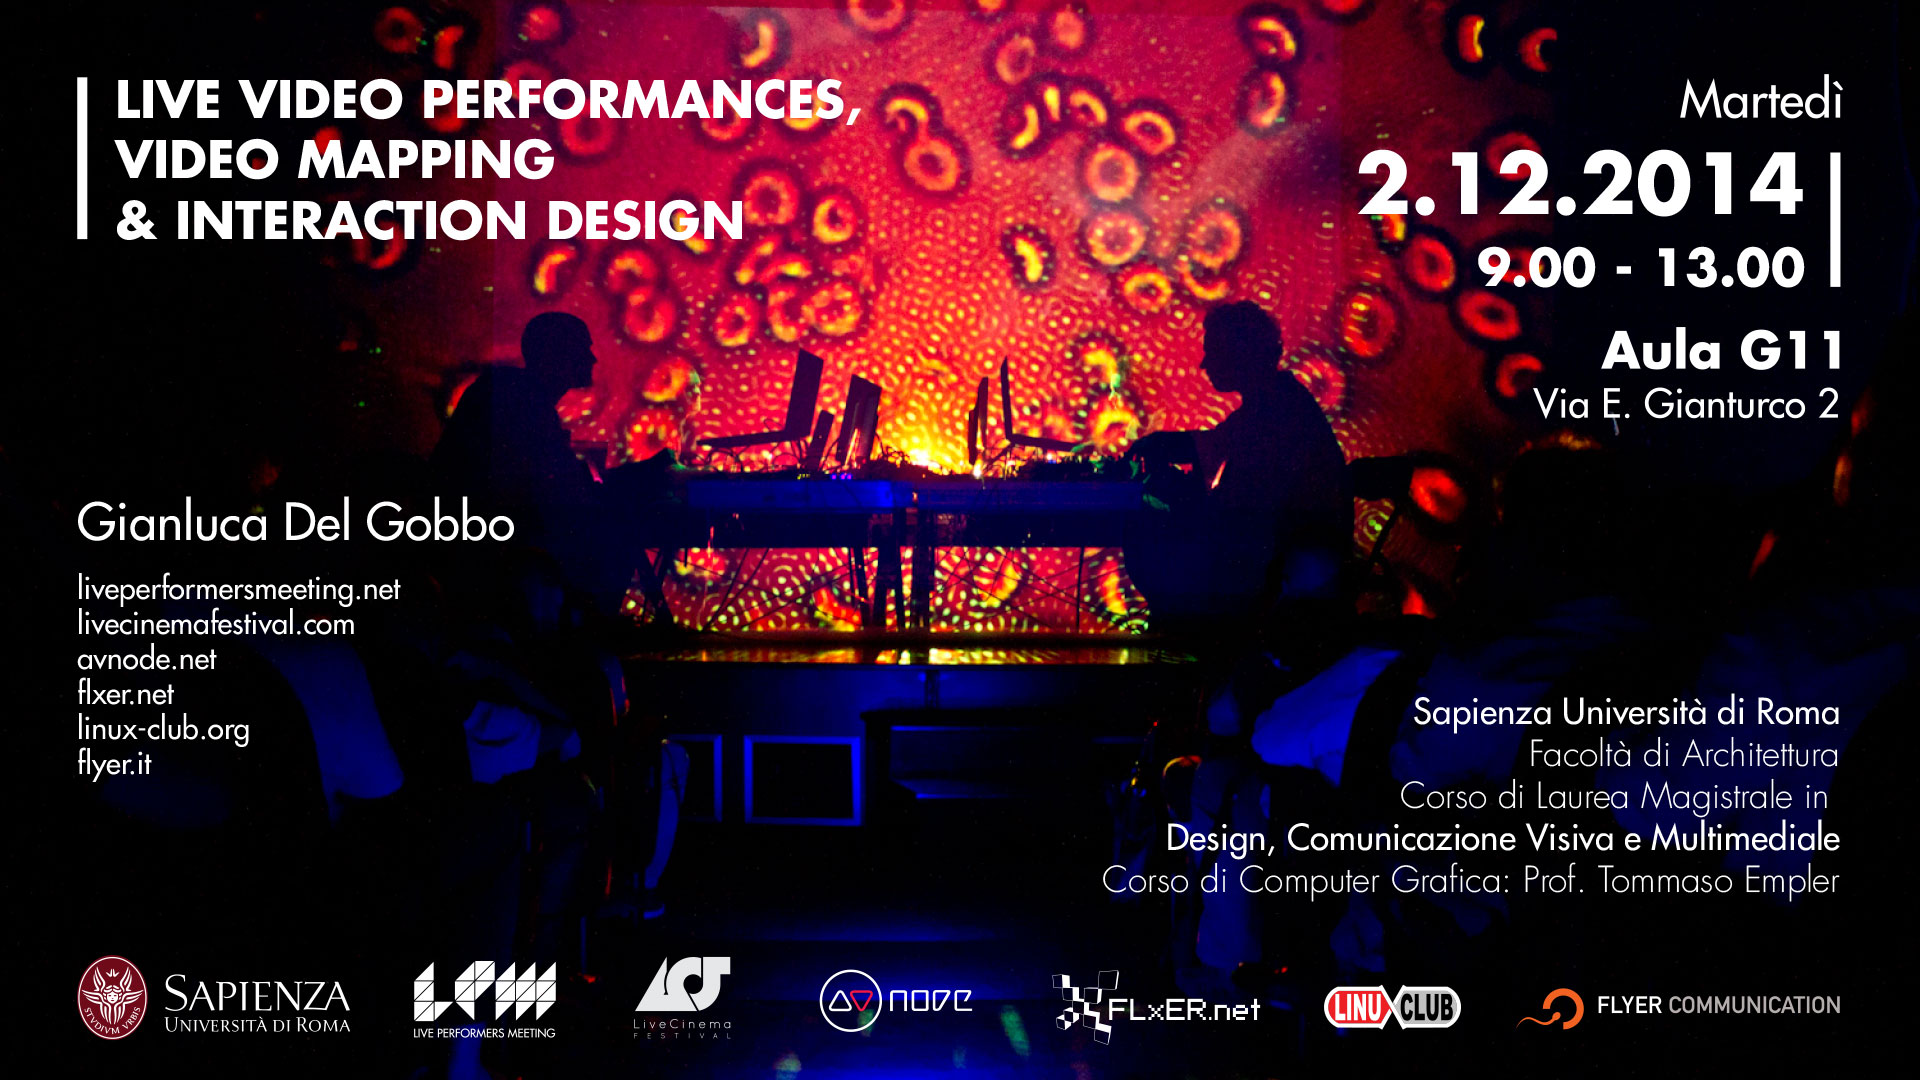 LPM 2015 Rome | Live Video Performances, Video Mapping & Interaction Design